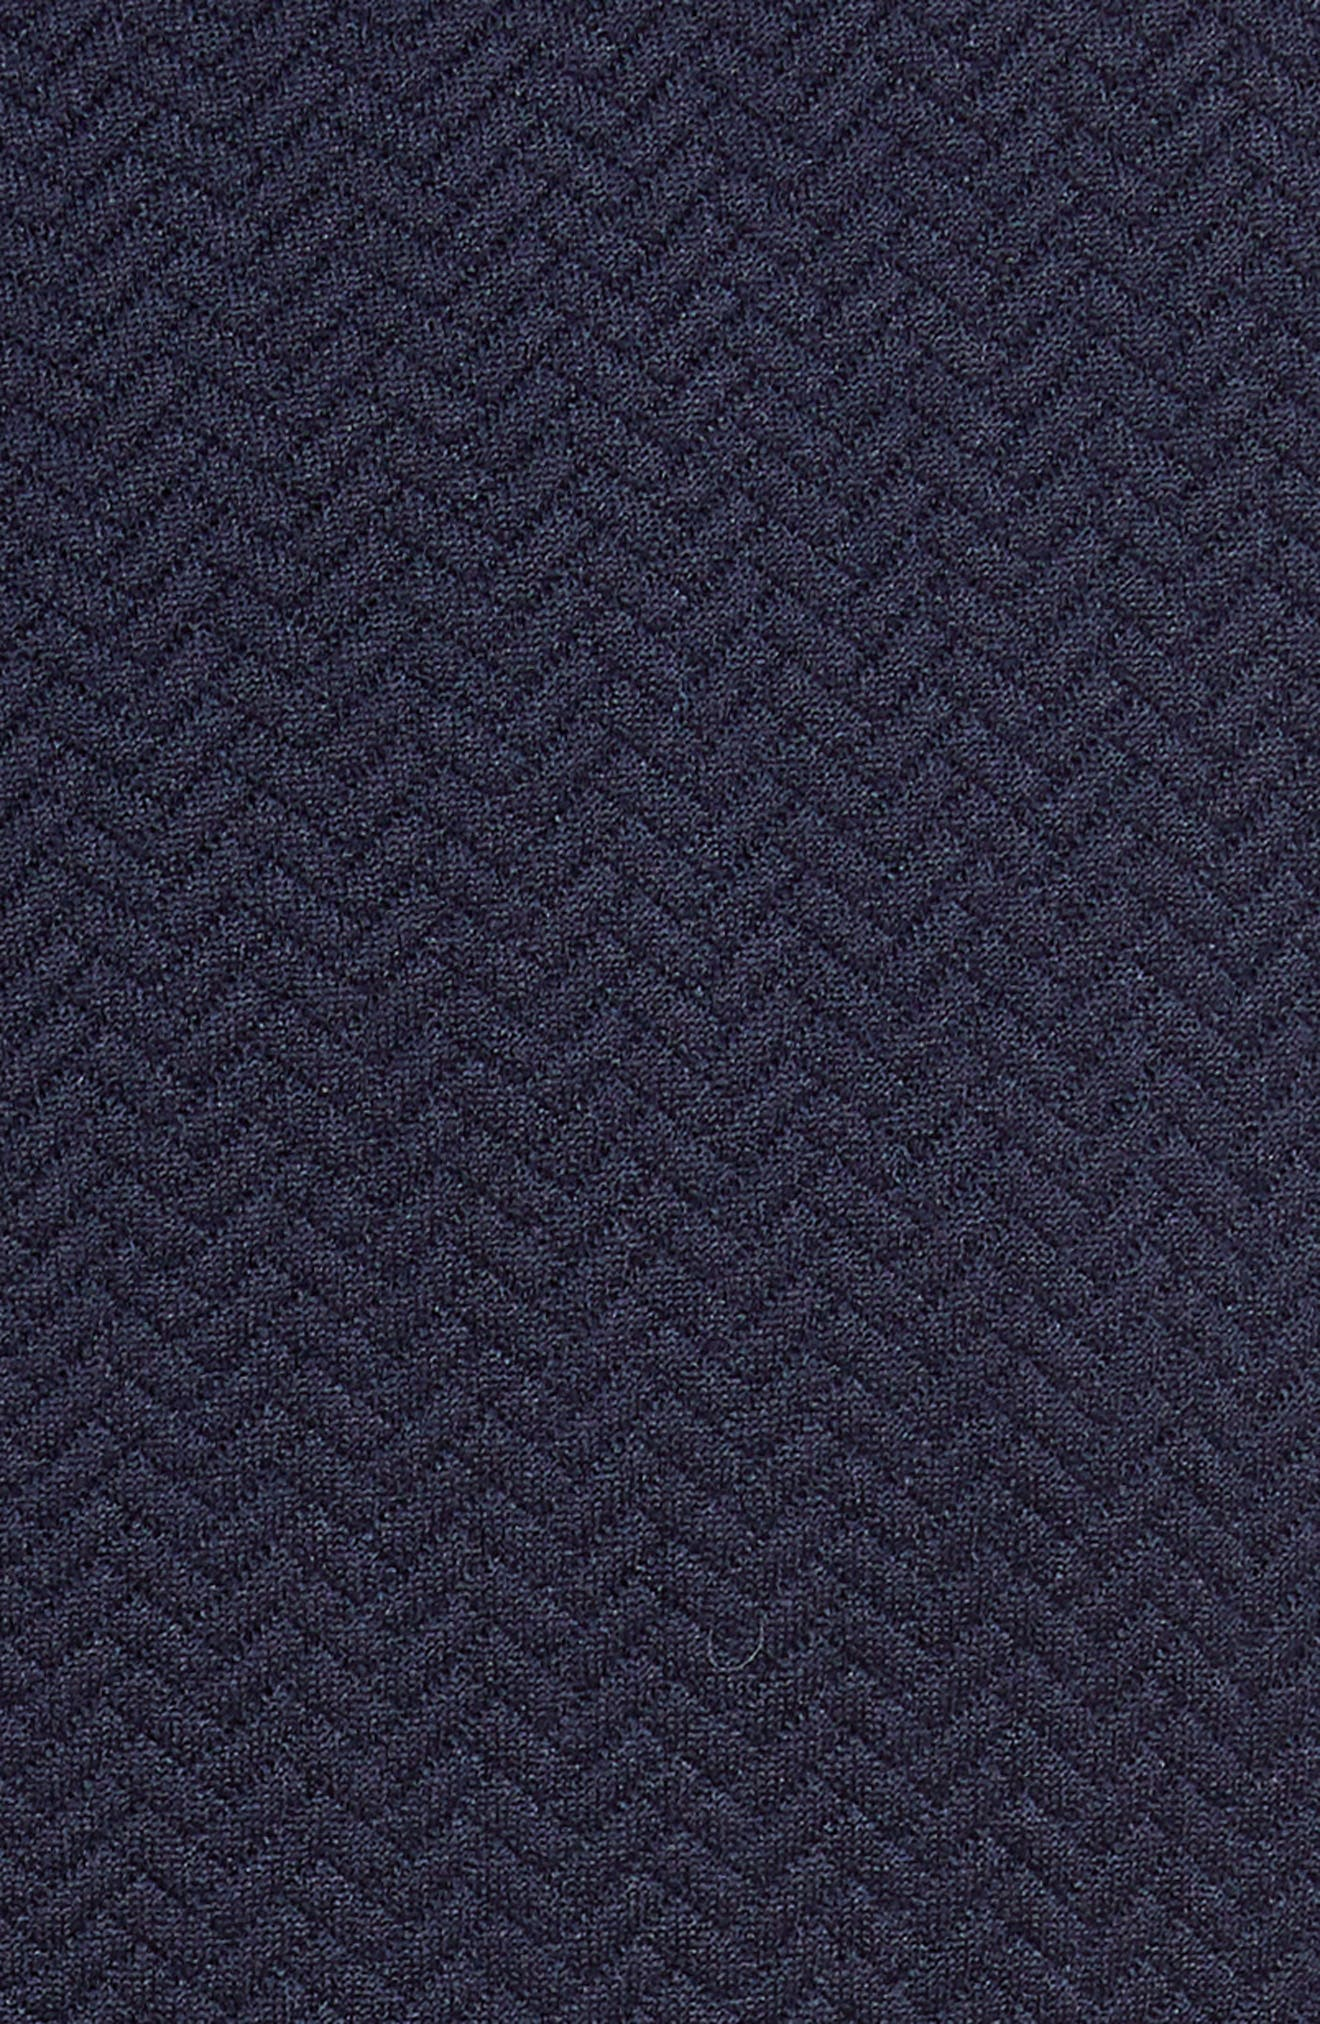 REBECCA TAYLOR, Textured Scallop Detail Fit & Flare Dress, Alternate thumbnail 6, color, NAVY